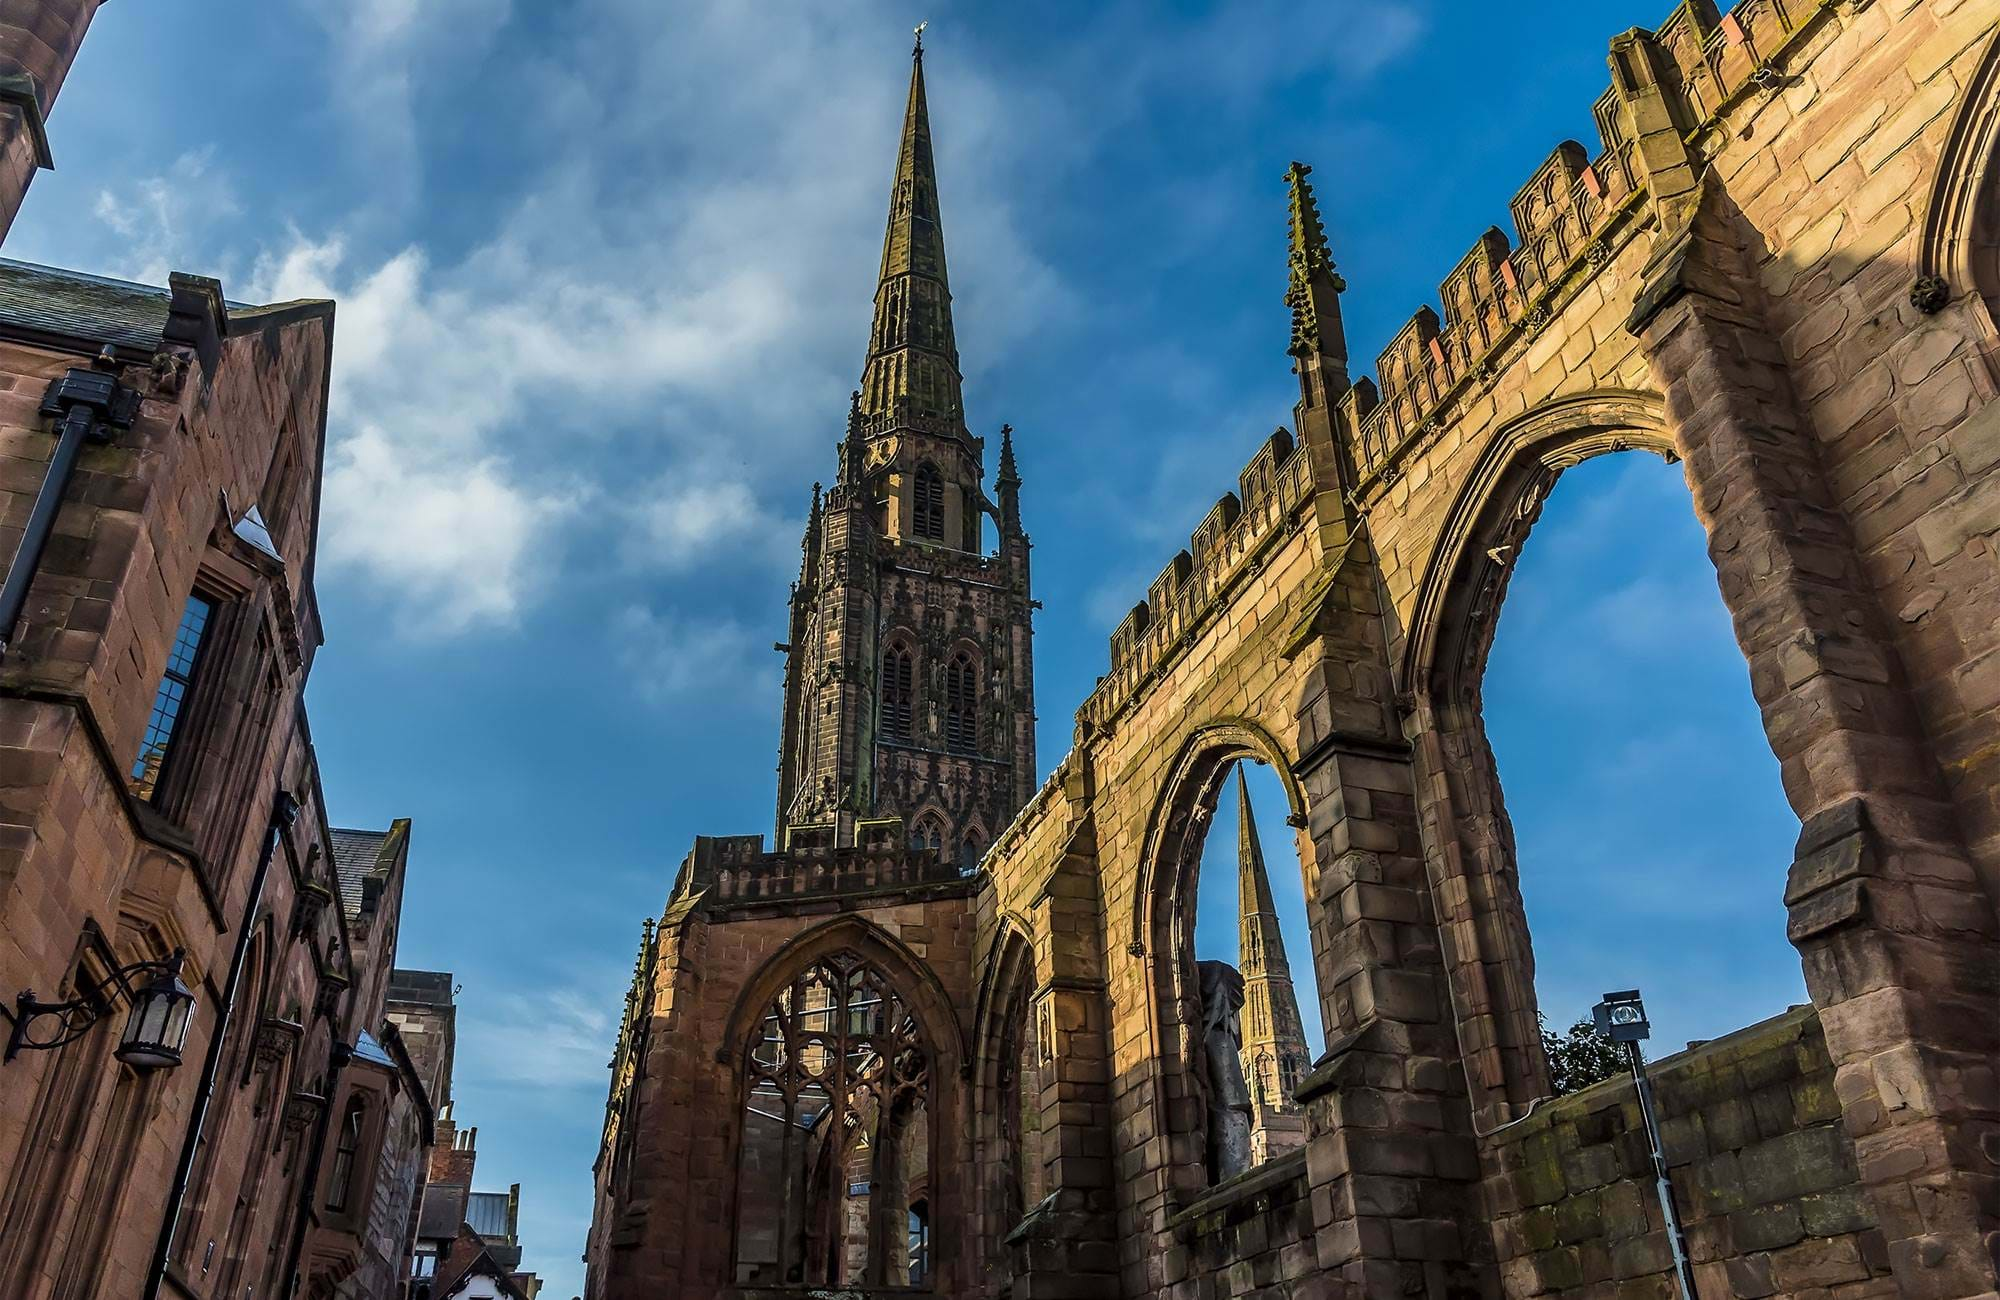 spires-arches-of-the-ruins-of-St-Michael's-Cathedral-Coventry